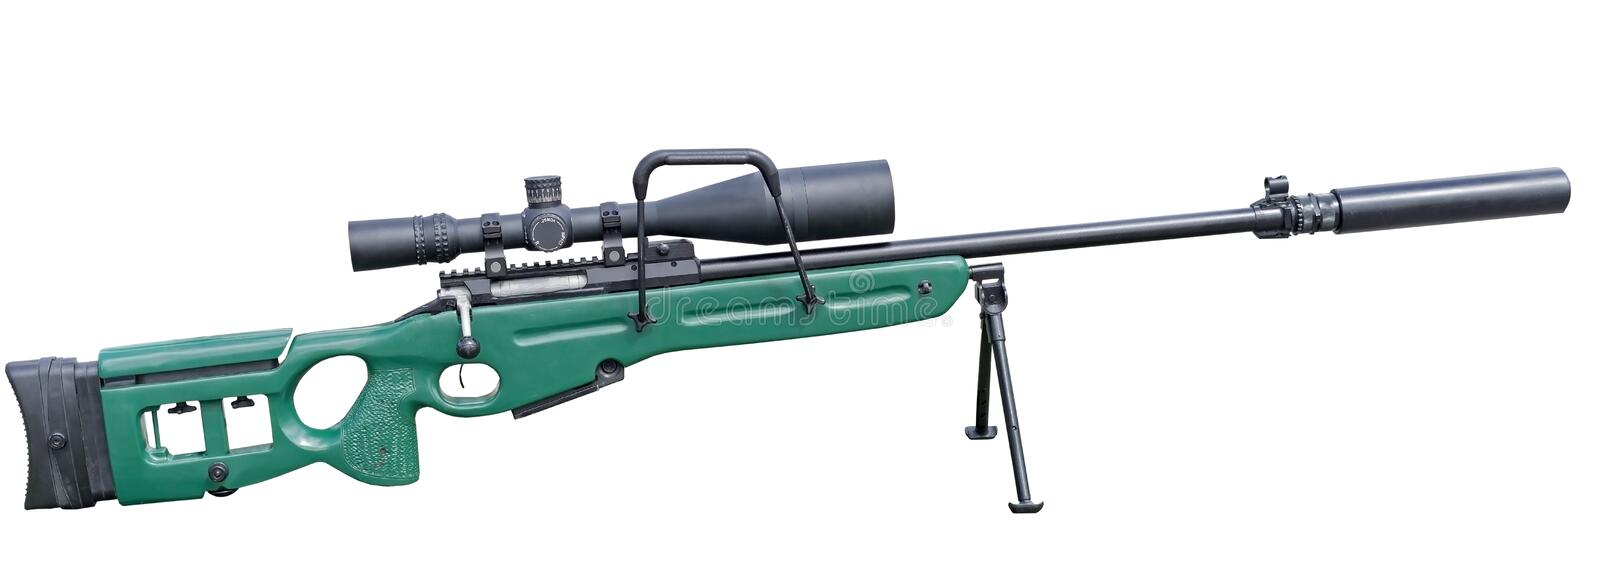 Modern sniper rifle royalty free stock images